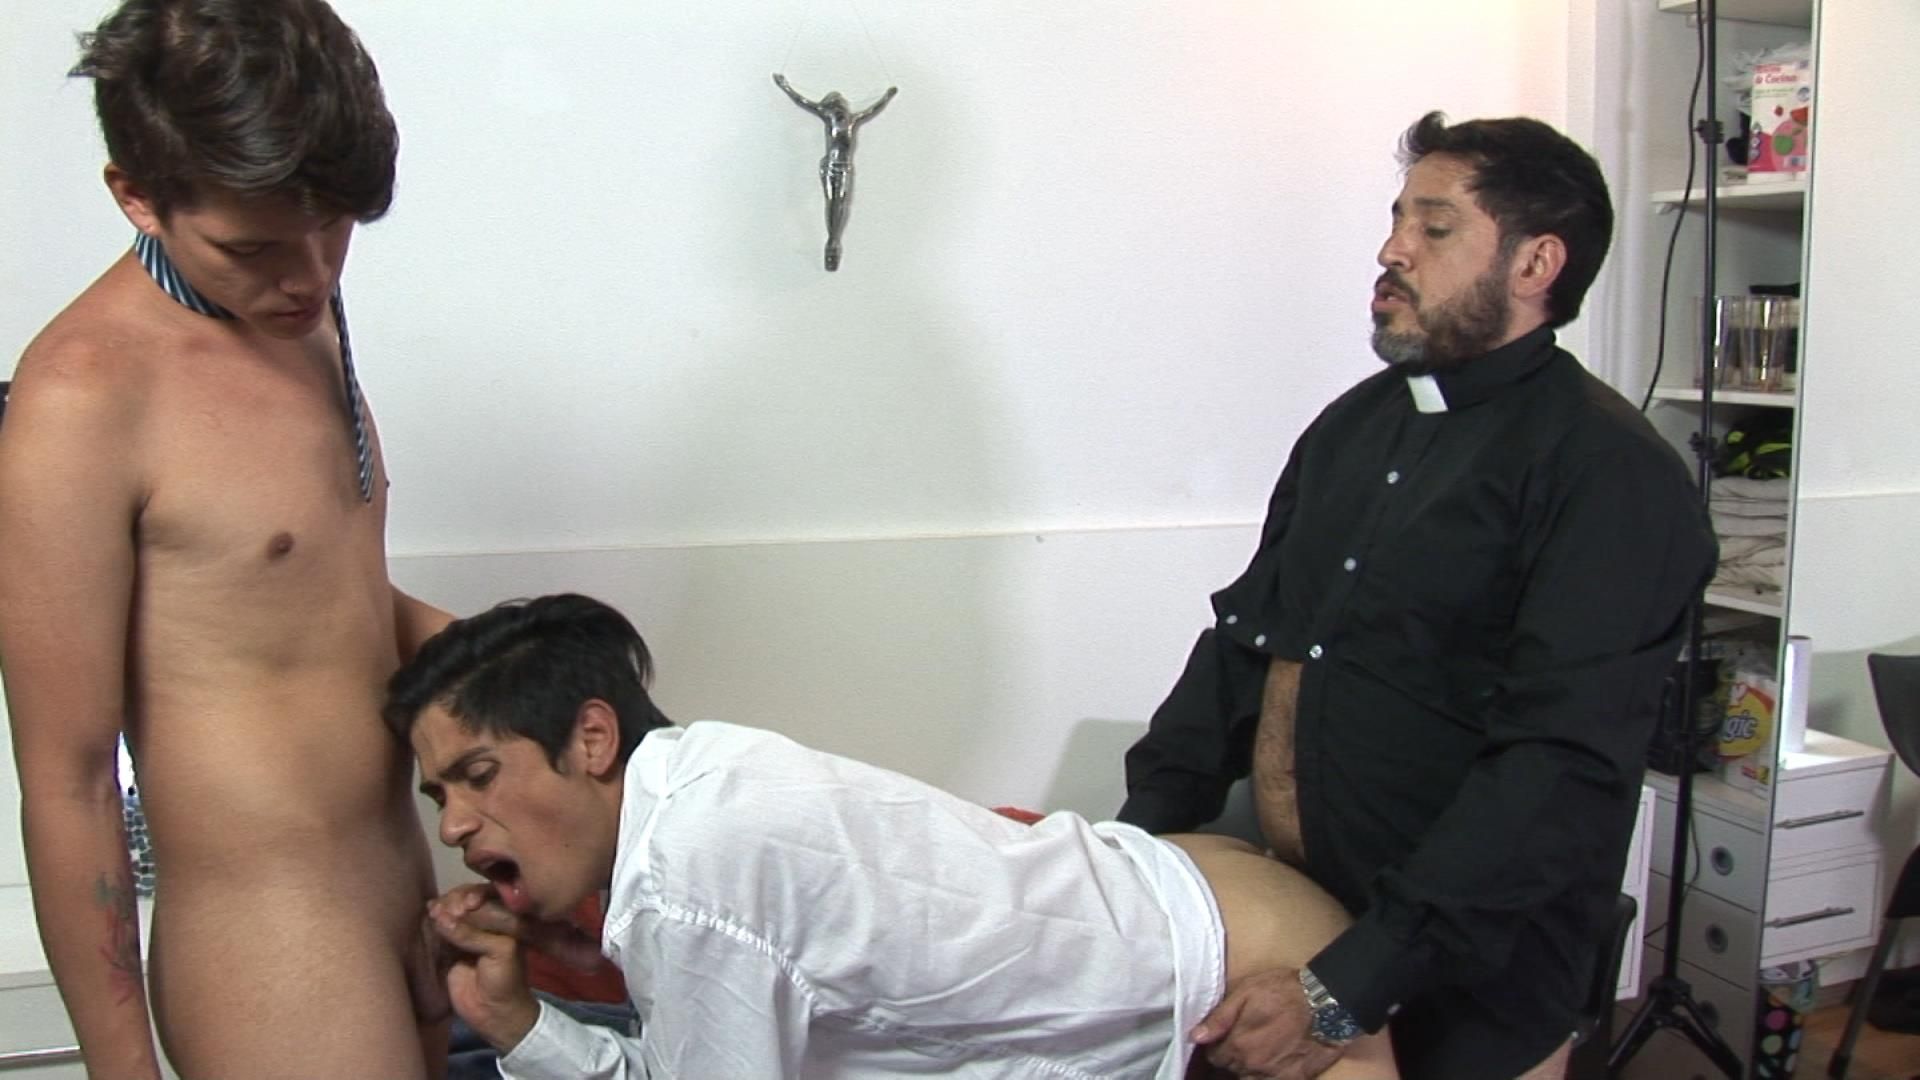 Bareback-Me-Daddy-Gay-Priest-Fucking-College-Students-21 Latin School Twinks Get Fucked By Their Older Catholic Priest